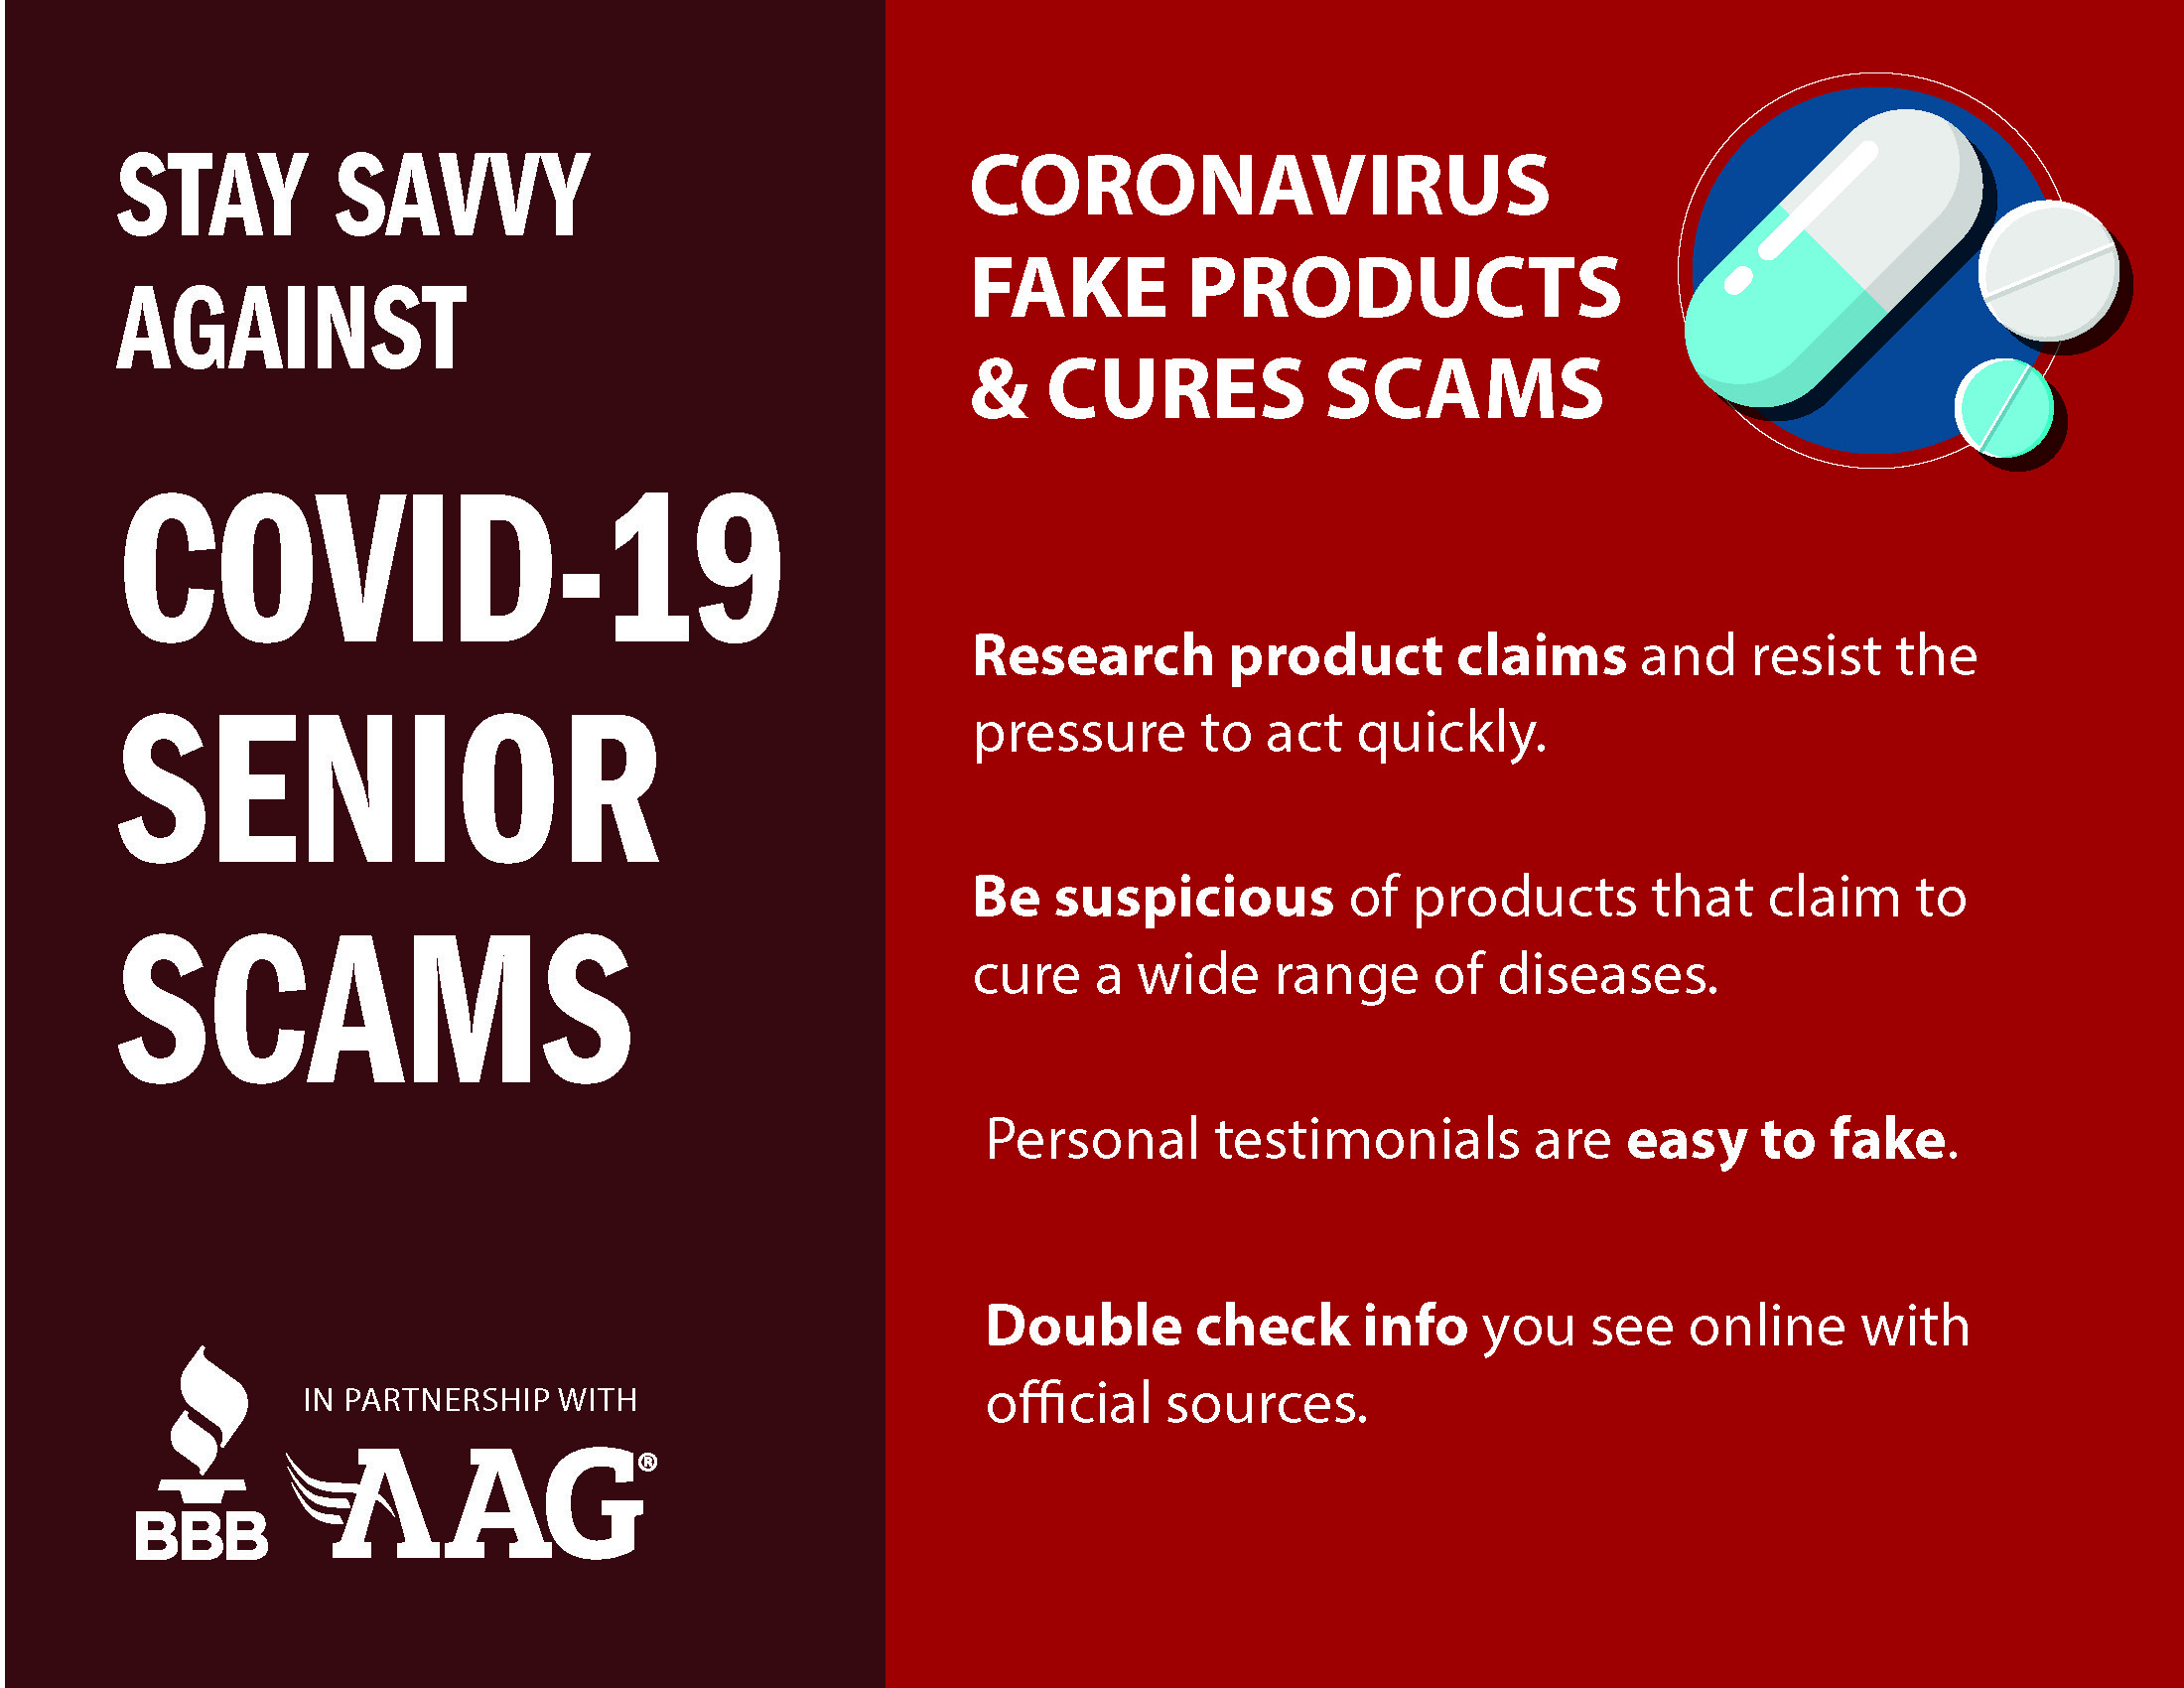 Coronavirus Fake Products & Cures Scams